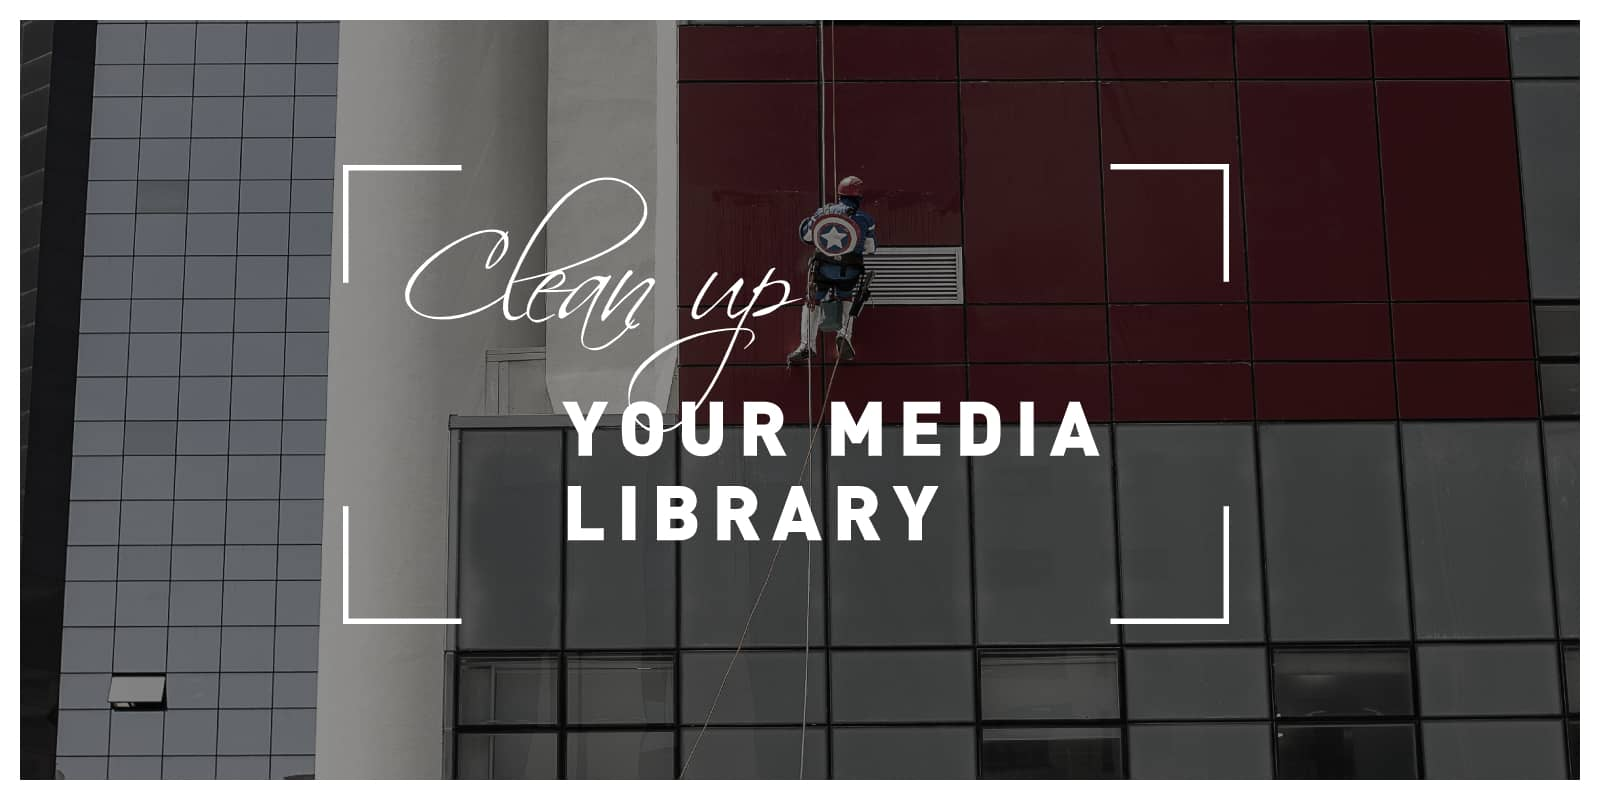 Clean up your media Library